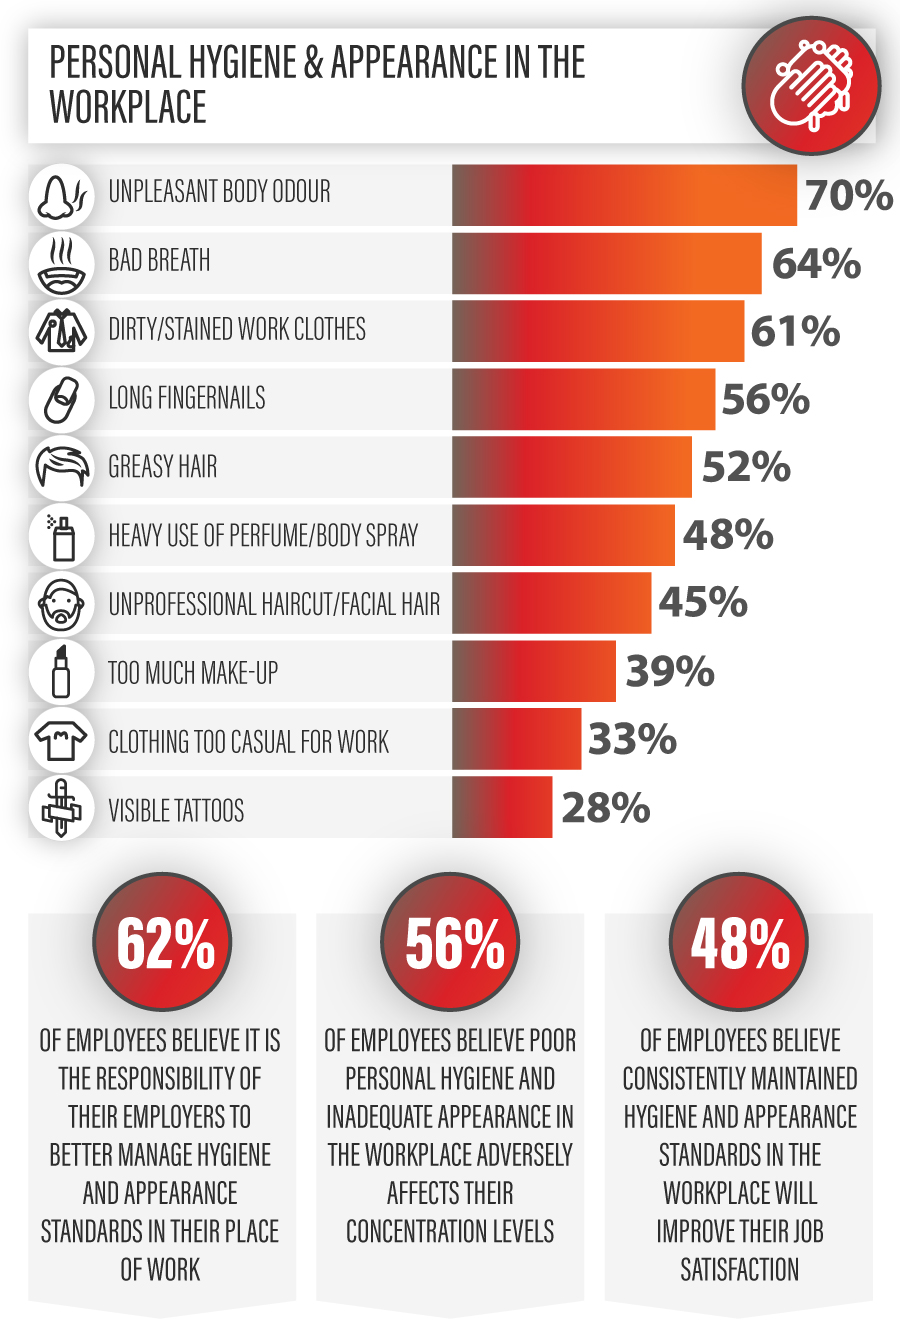 hygiene-workplace-infographic